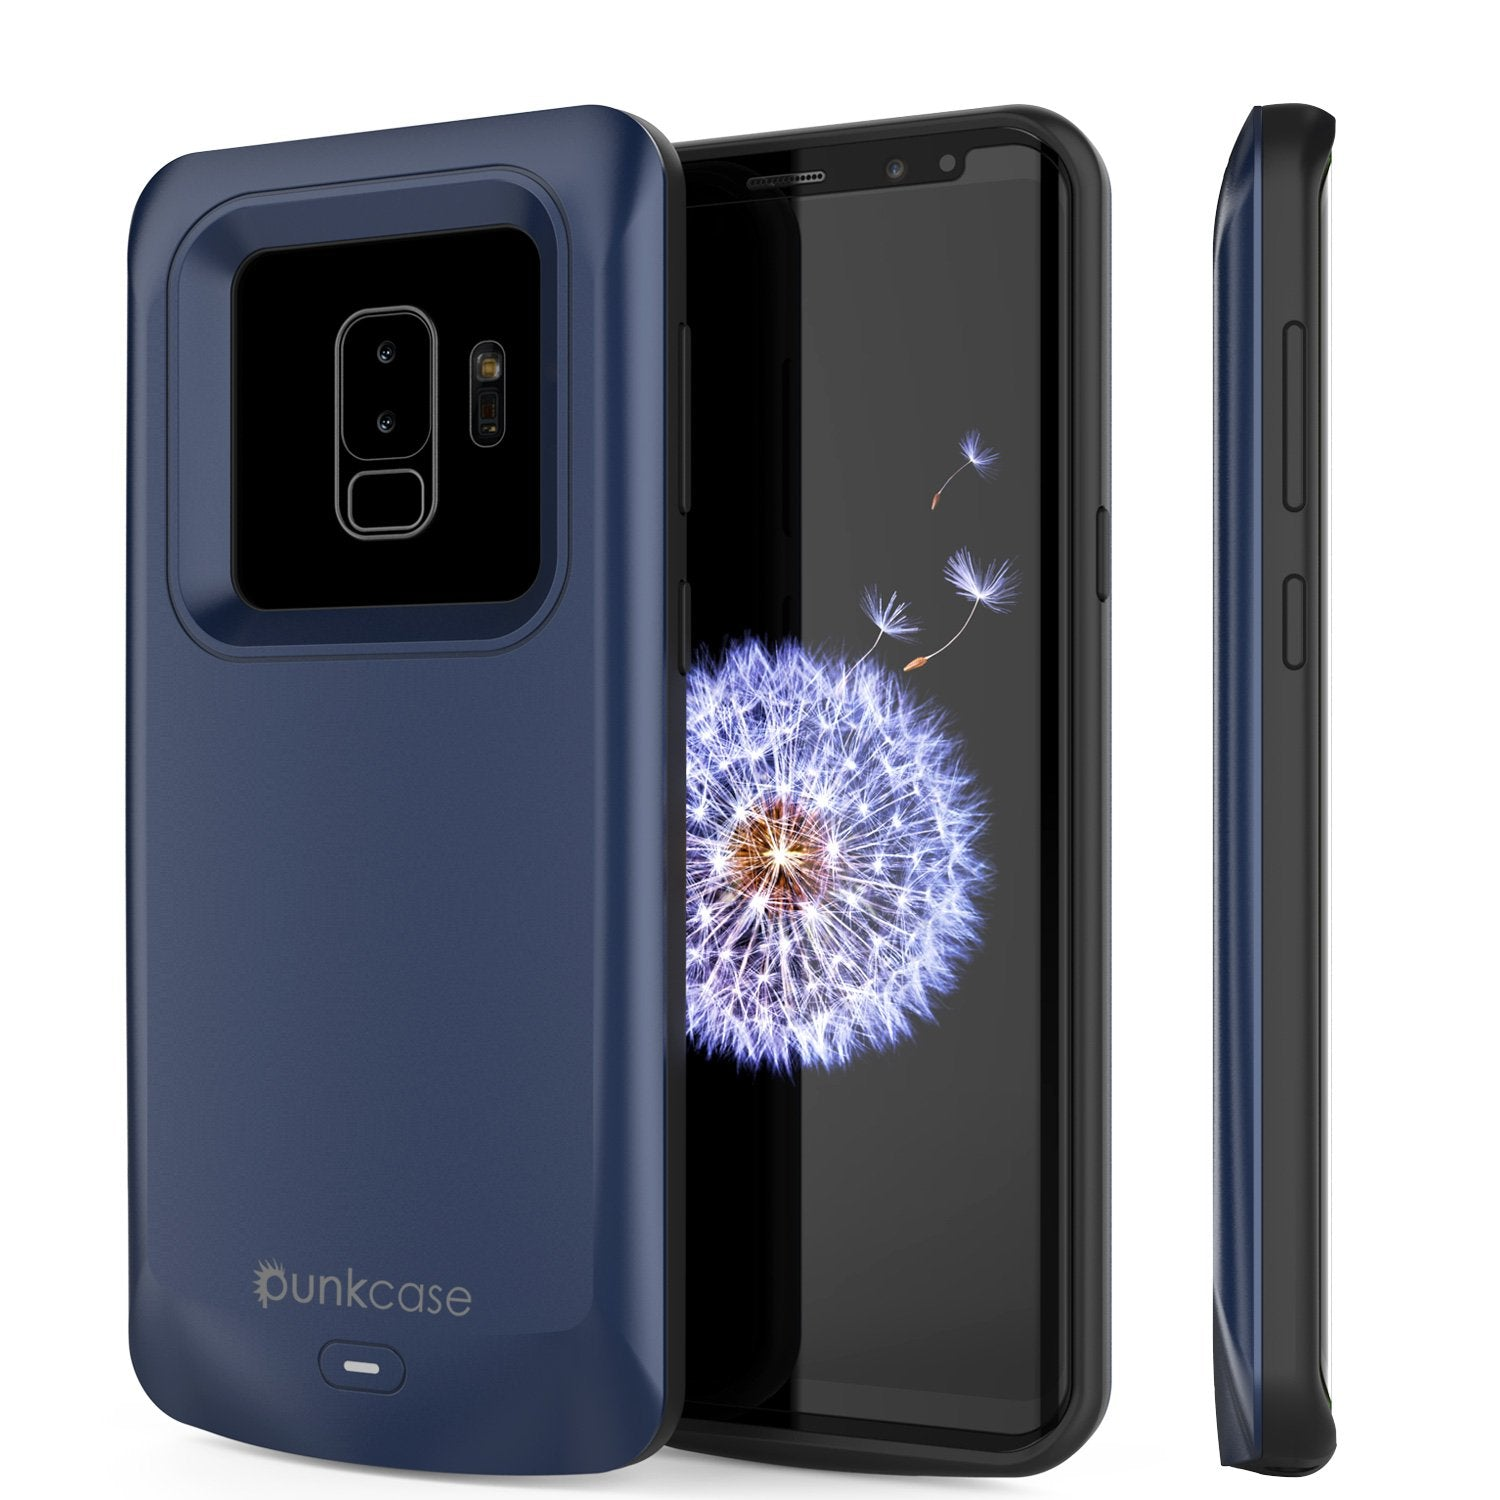 Galaxy S9 PLUS Battery Case, PunkJuice 5000mAH Fast Charging Power Bank W/ Screen Protector | Integrated USB Port | IntelSwitch | Slim, Secure and Reliable | Suitable for Samsung Galaxy S9+ [Navy]